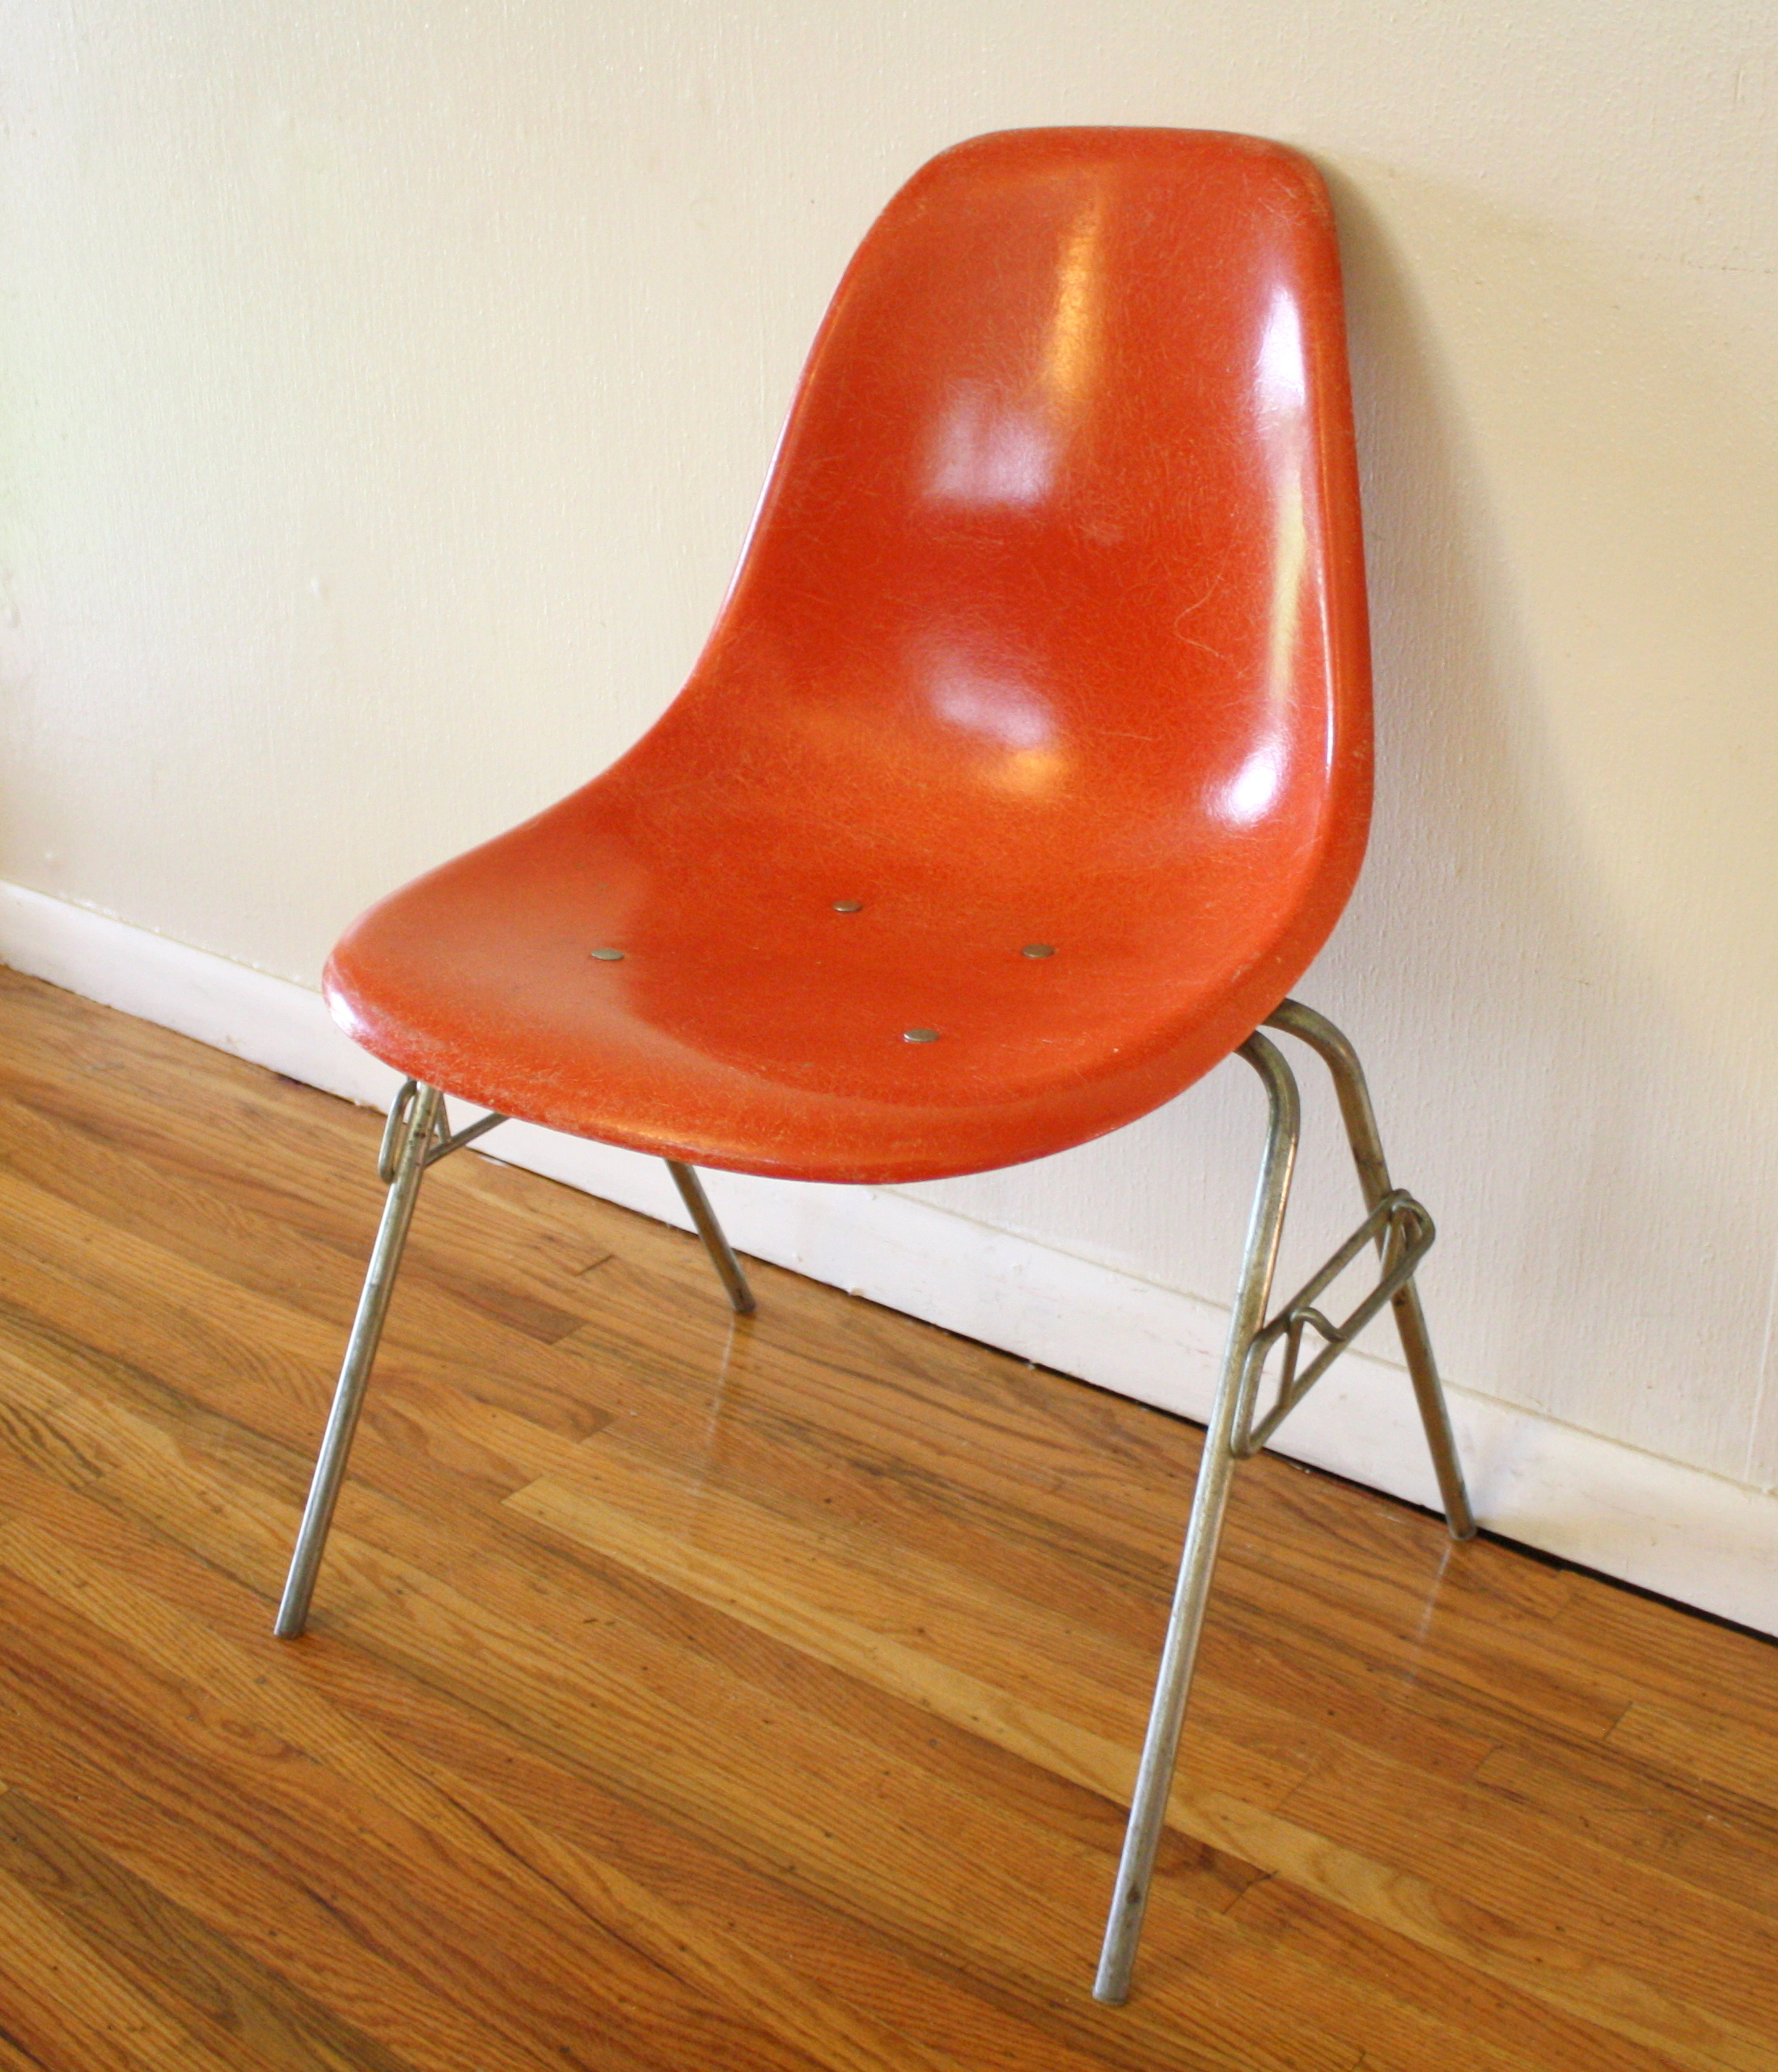 Eames Arm Chair Mid Century Modern Fiberglass Chairs By Herman Miller